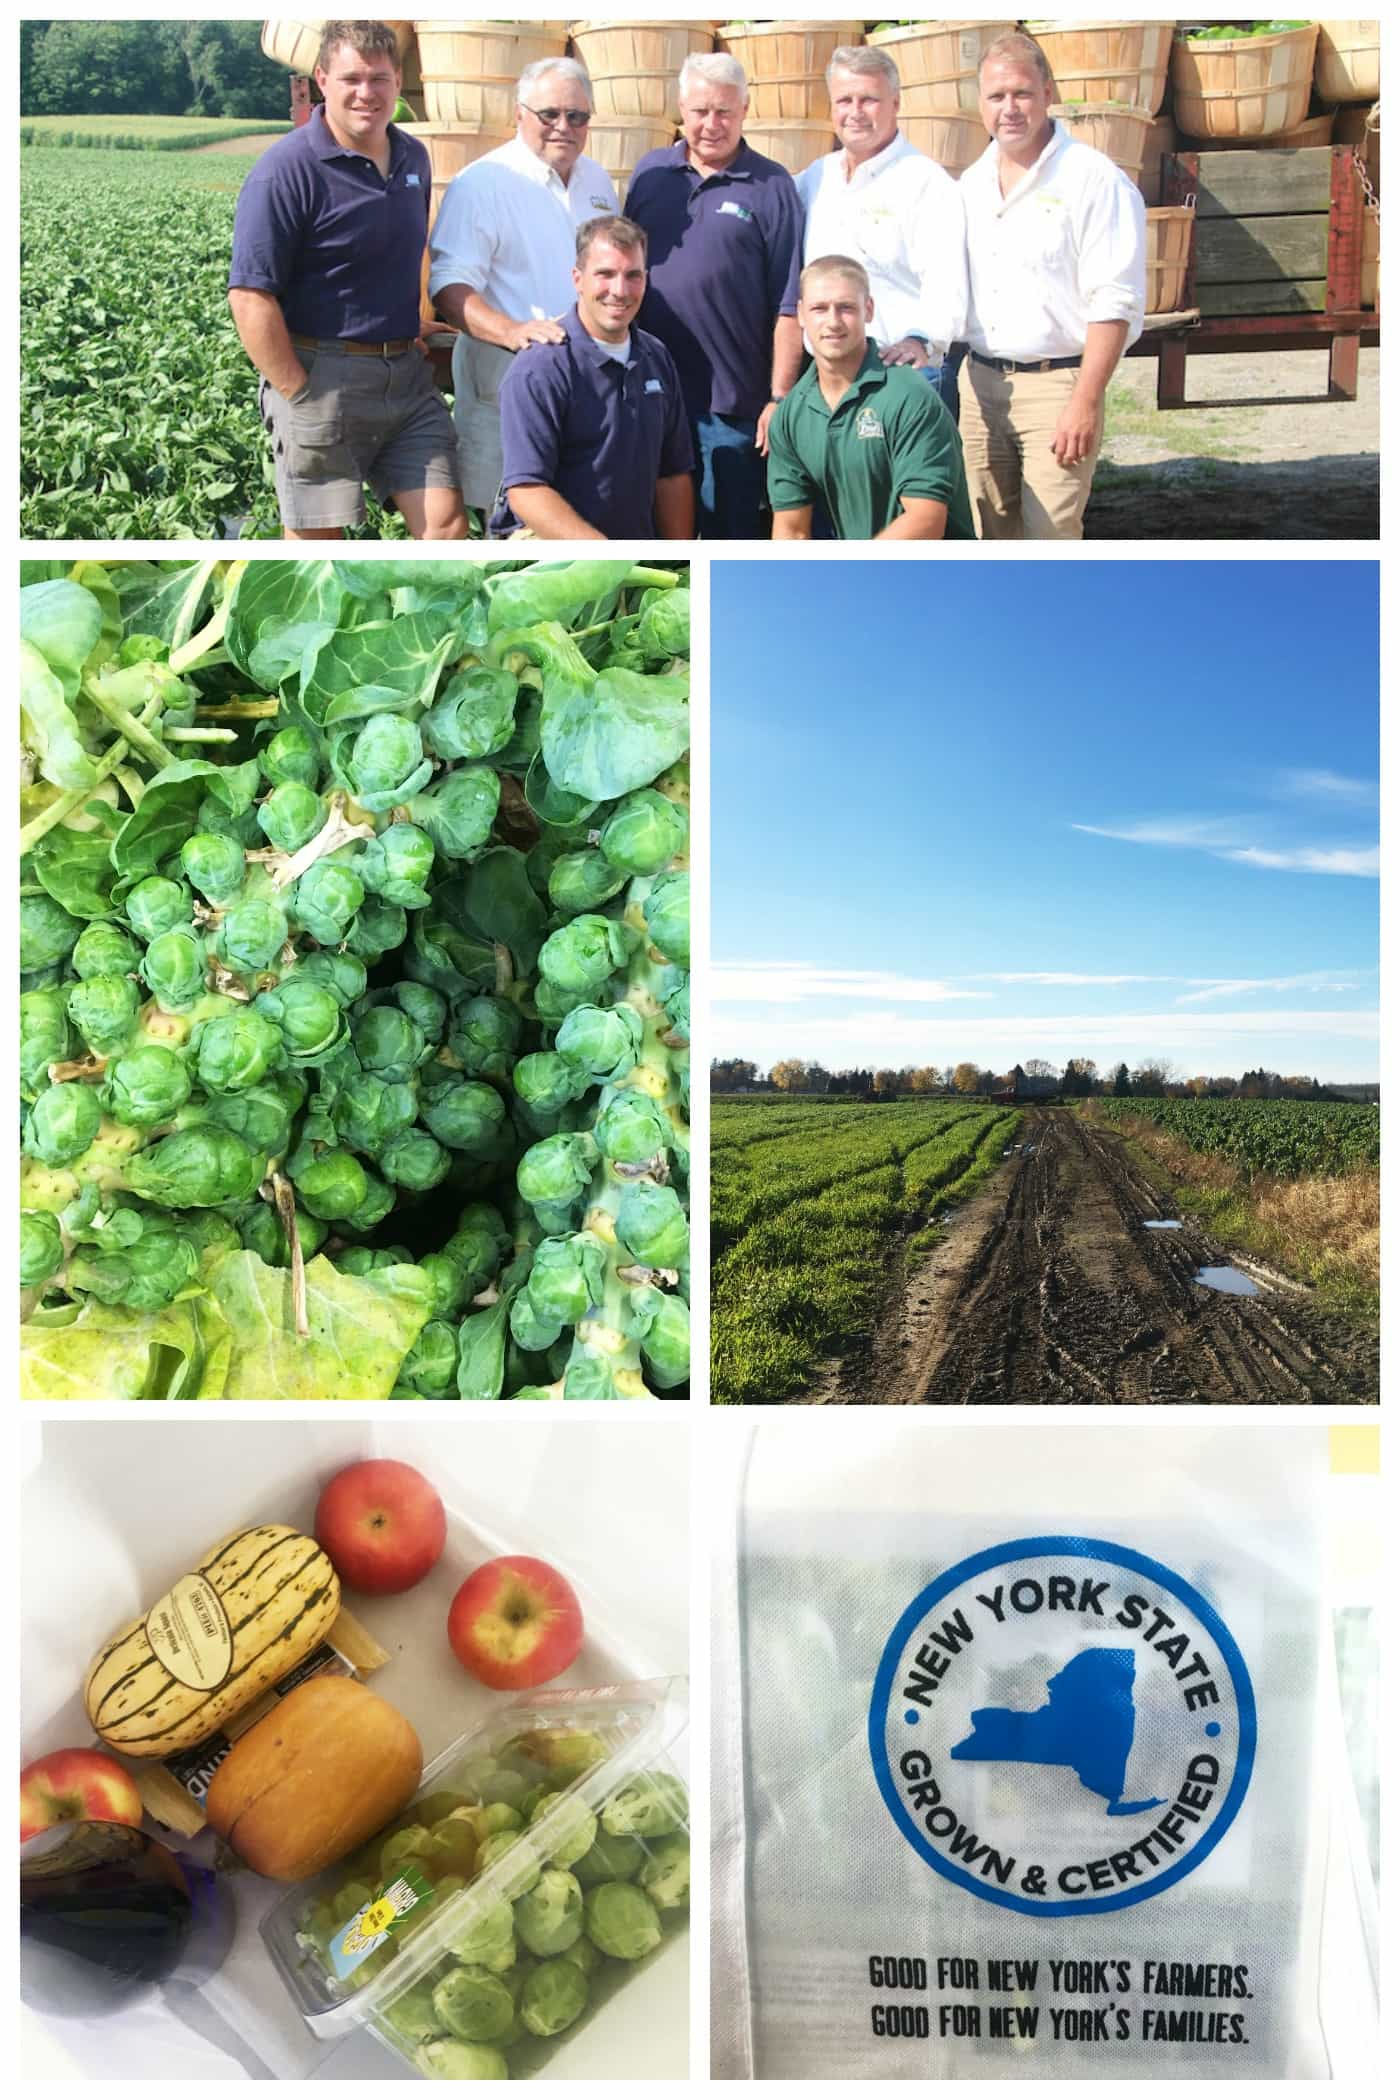 Touring the Amos Zittel & Sons farm in Eden, NY